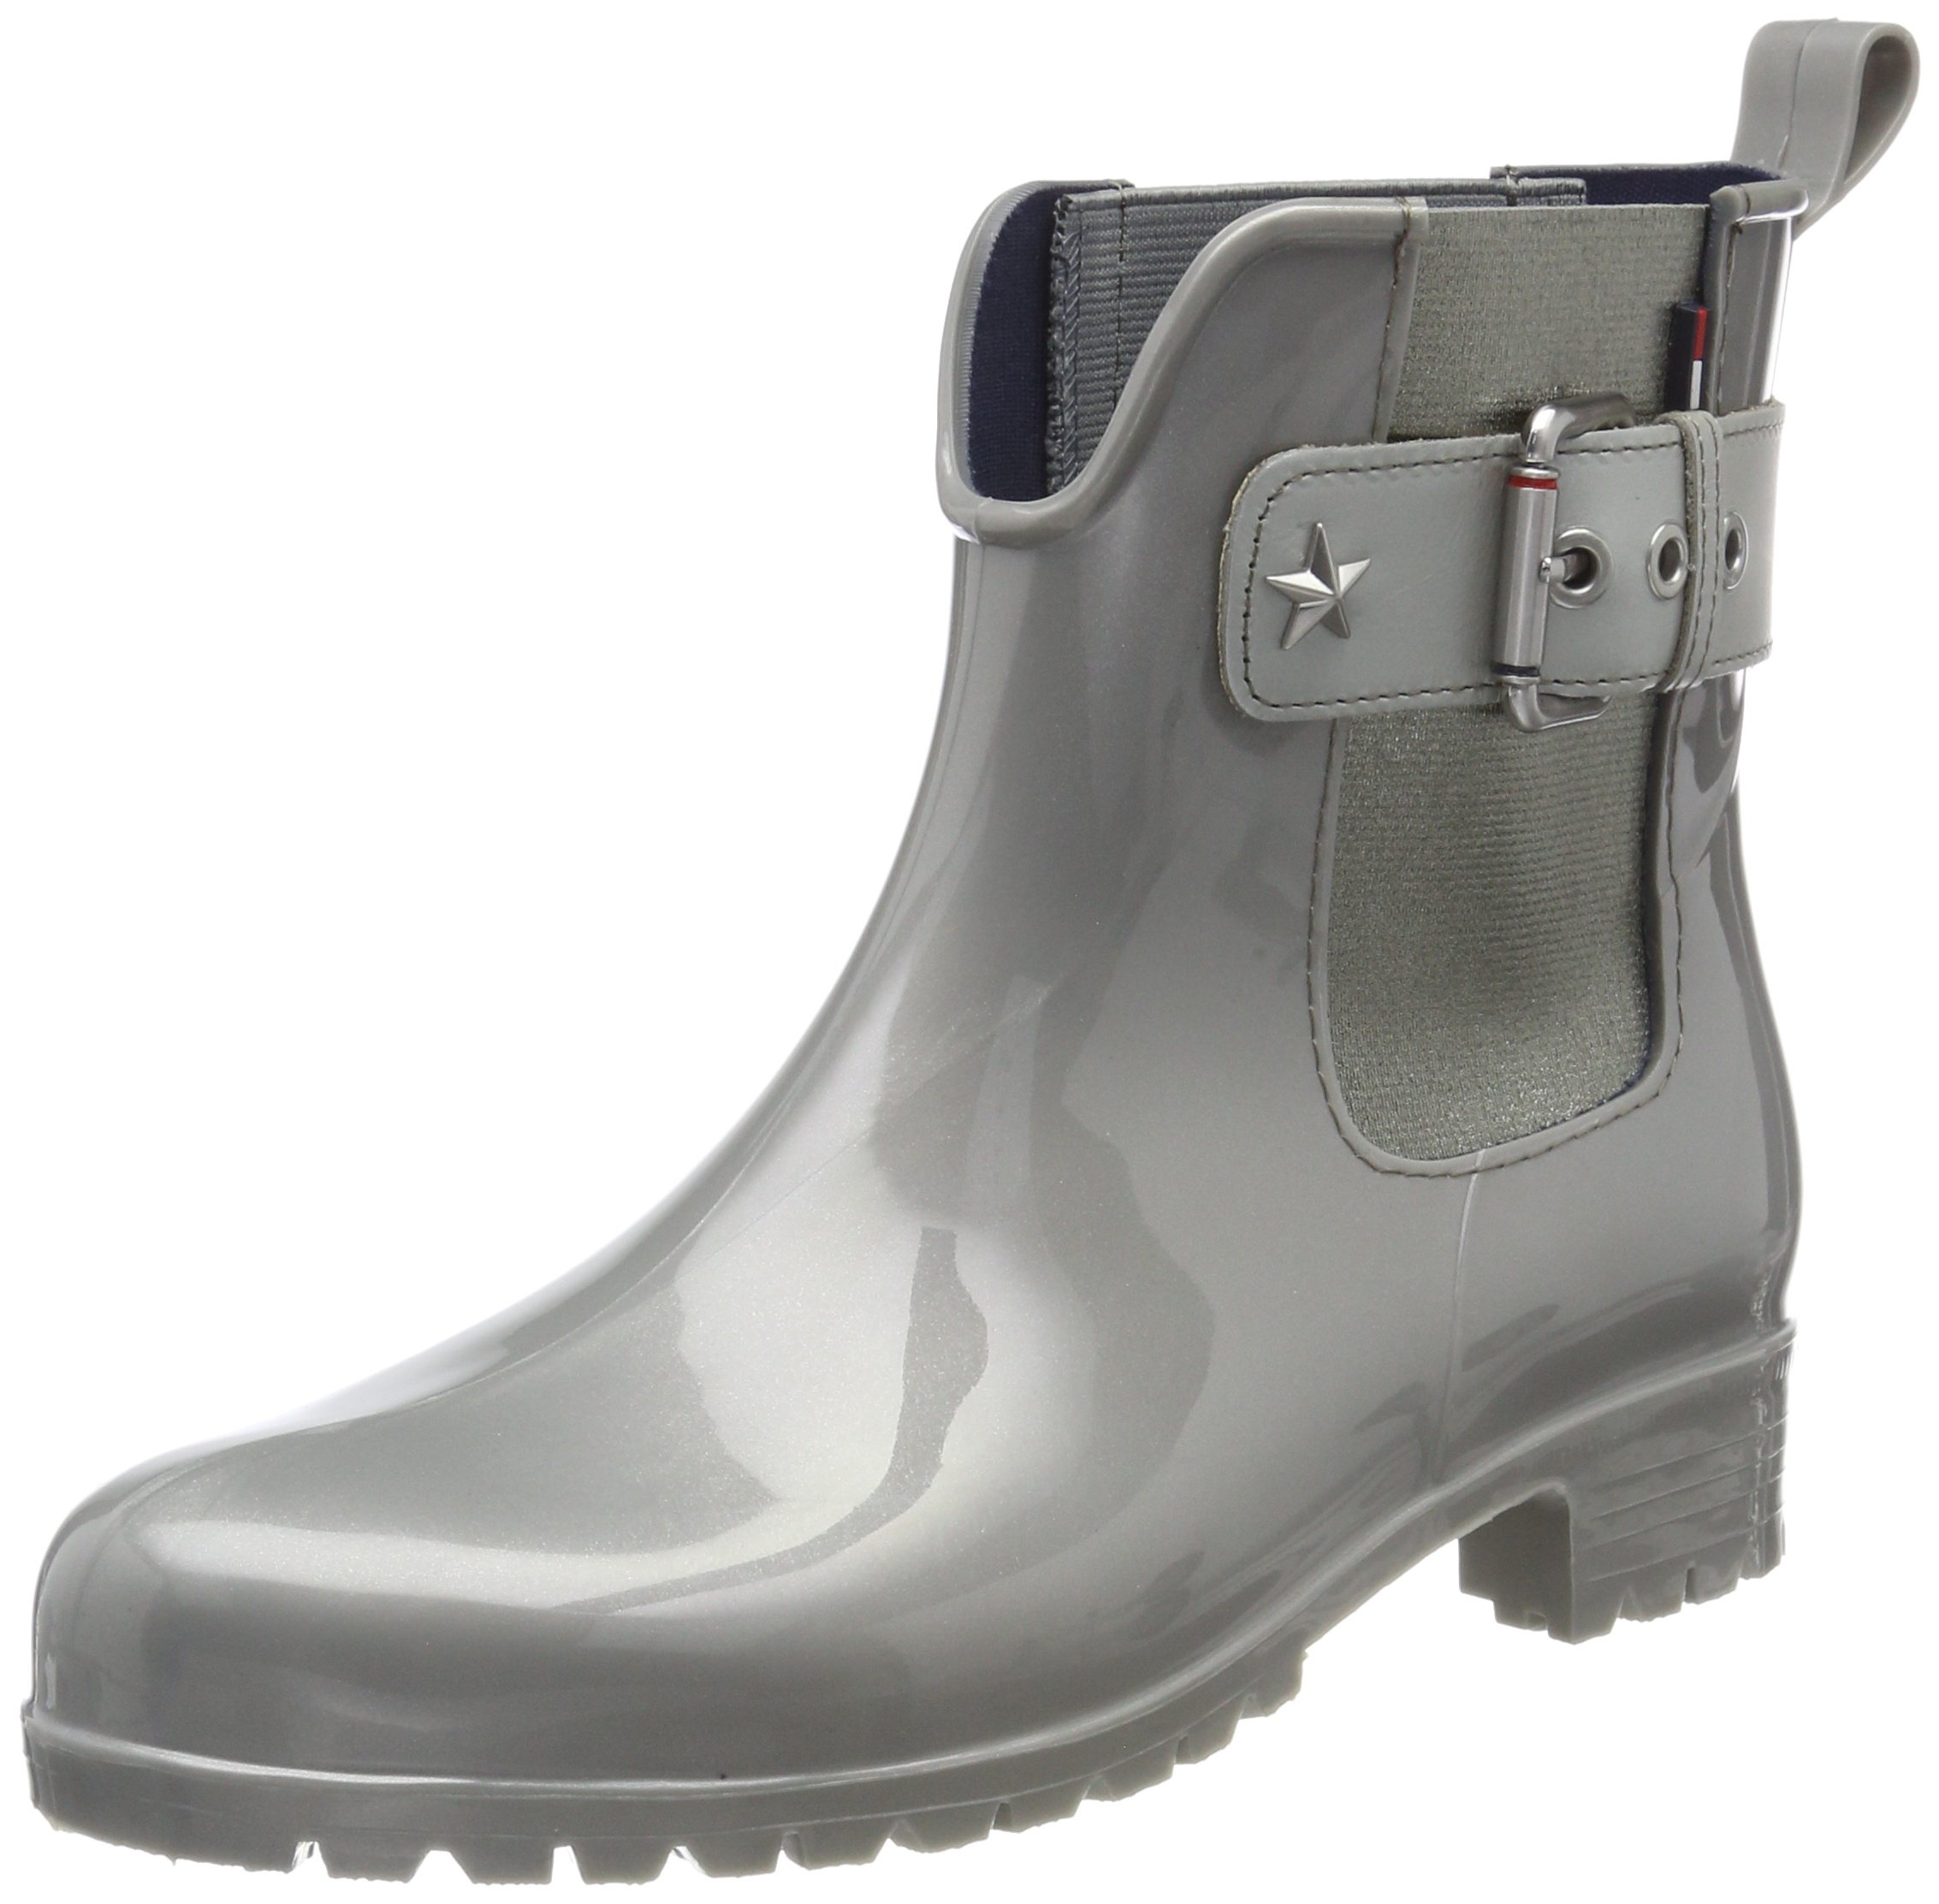 057d8c7720a2b8 Tommy Hilfiger Women s Material Mix Rain Boot Wellington Boots. Tommy  Hilfiger Women s O1285XLEY 14 V3 Wellies